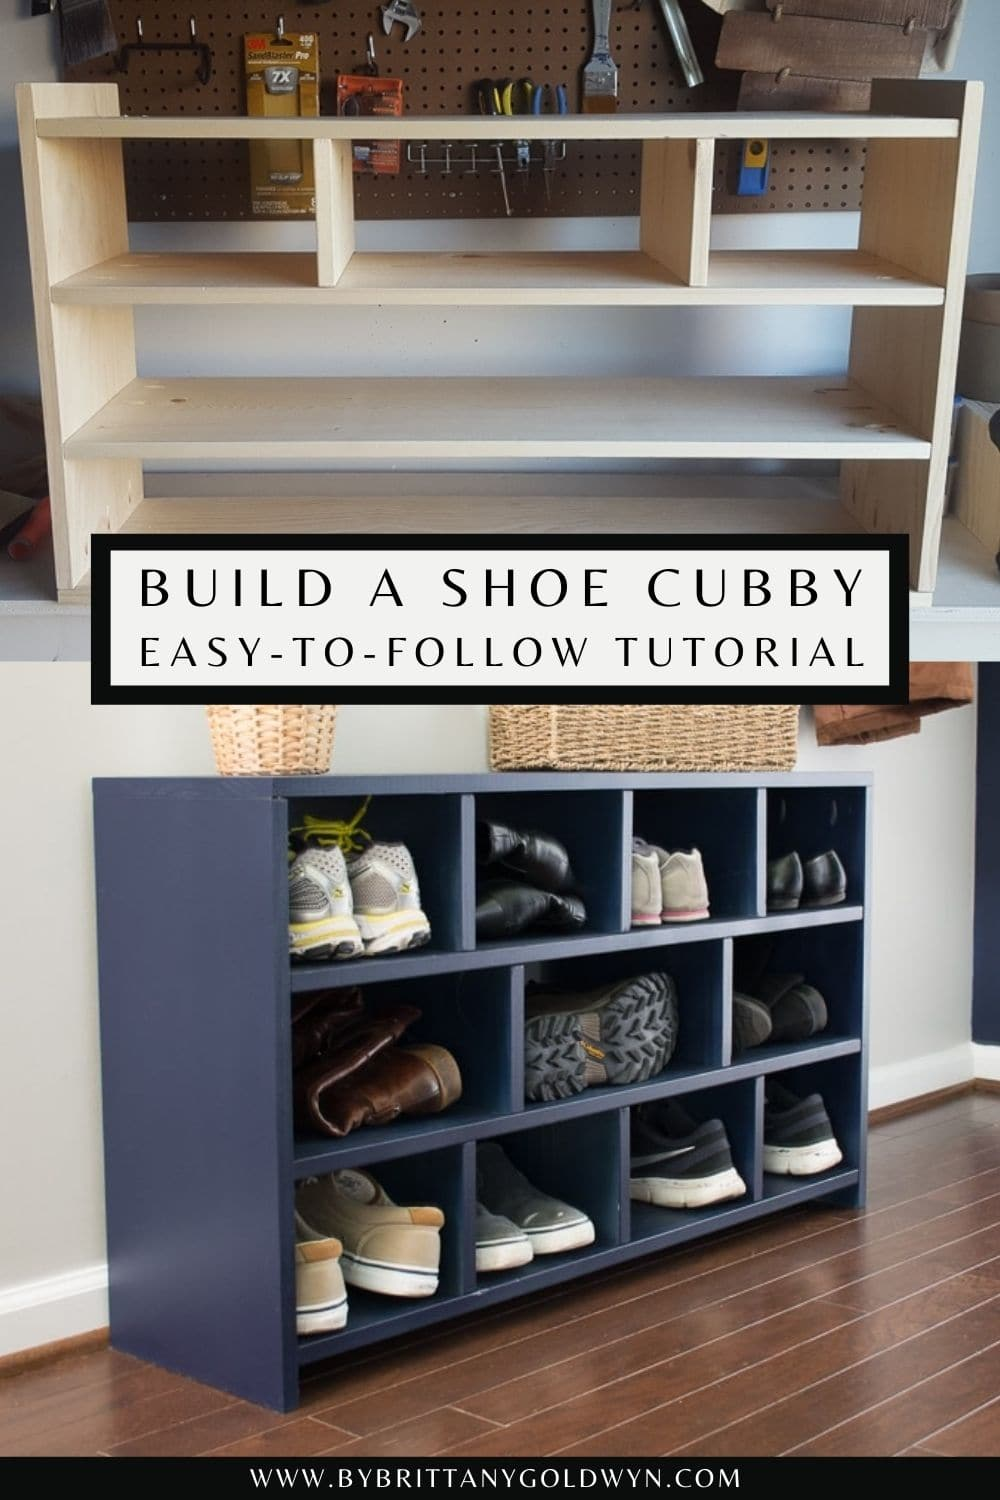 pinnable graphic with a collage of DIY shoe cubby photos and text overlay